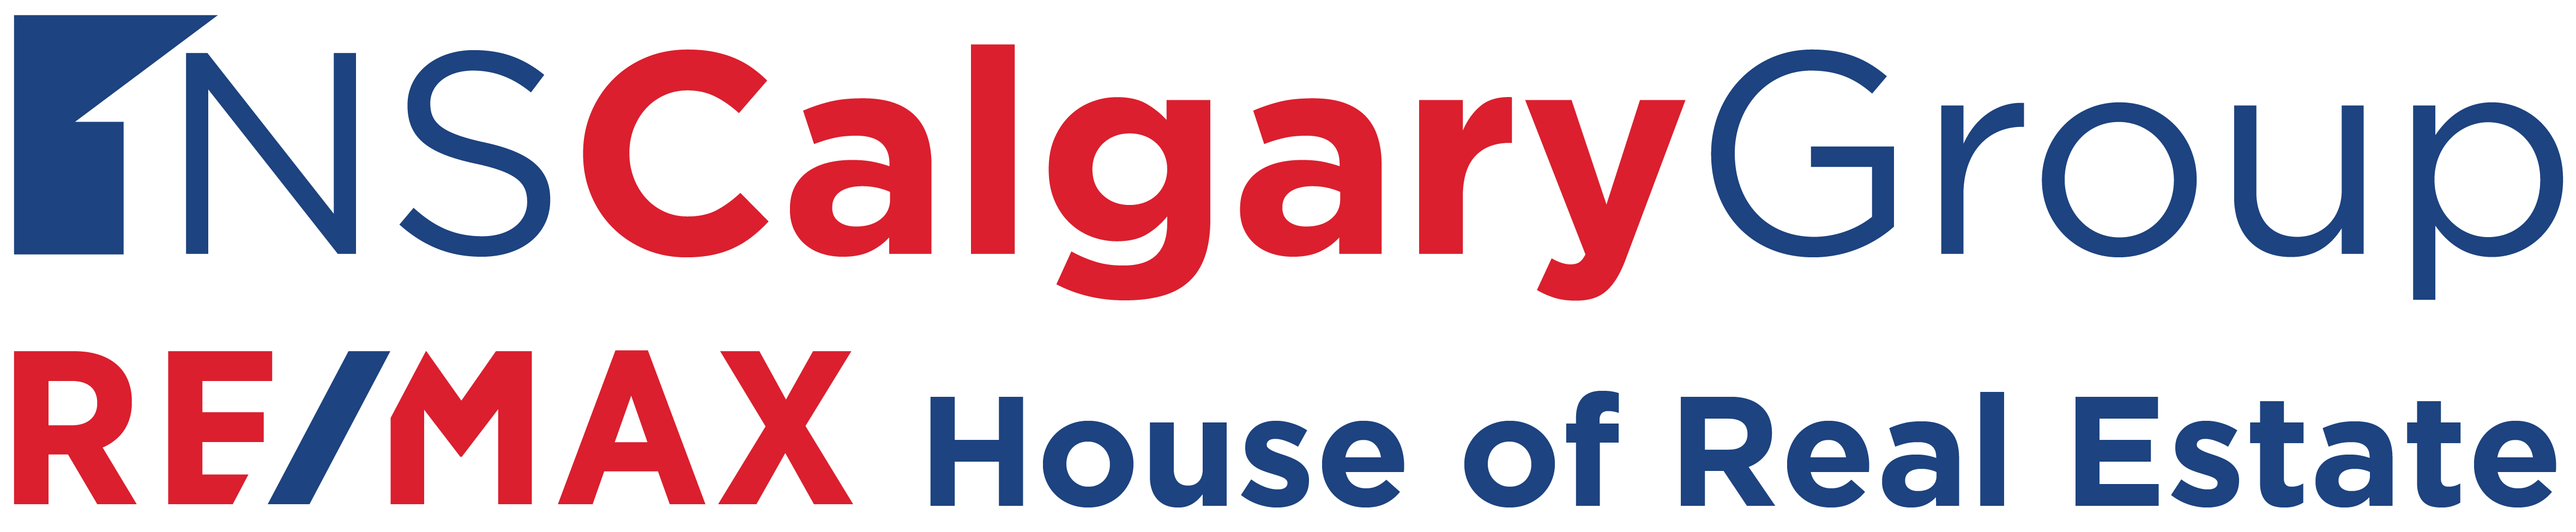 NS Calgary Group at RE/MAX House of Real Estate